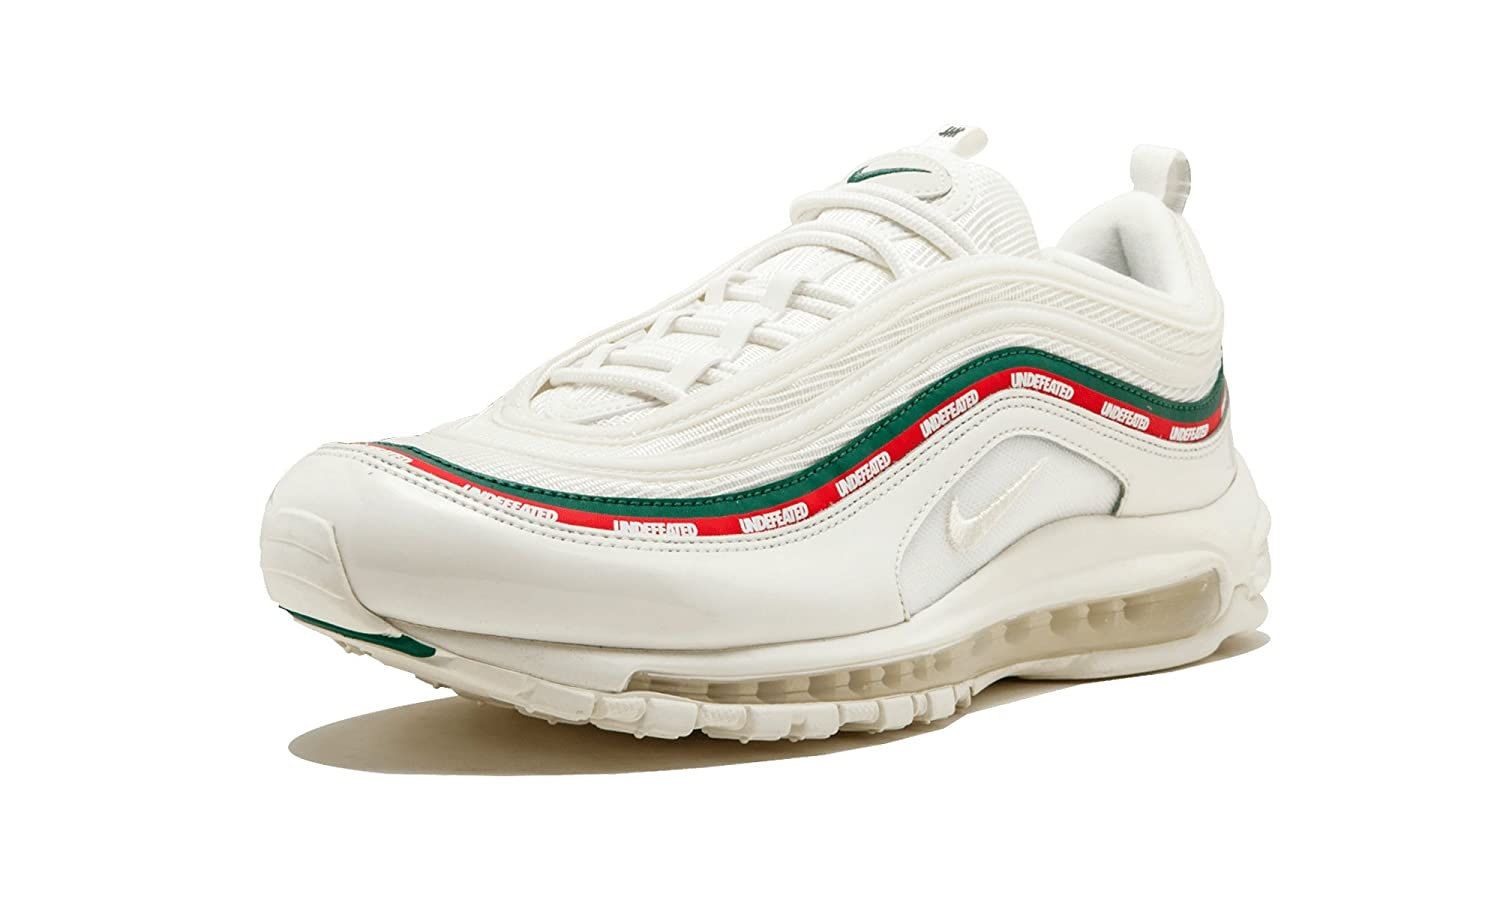 nice cheap stable quality official shop NIKE AIR MAX 97 OG/Undftd 'Undefeated' - AJ1986-100 - Size ...